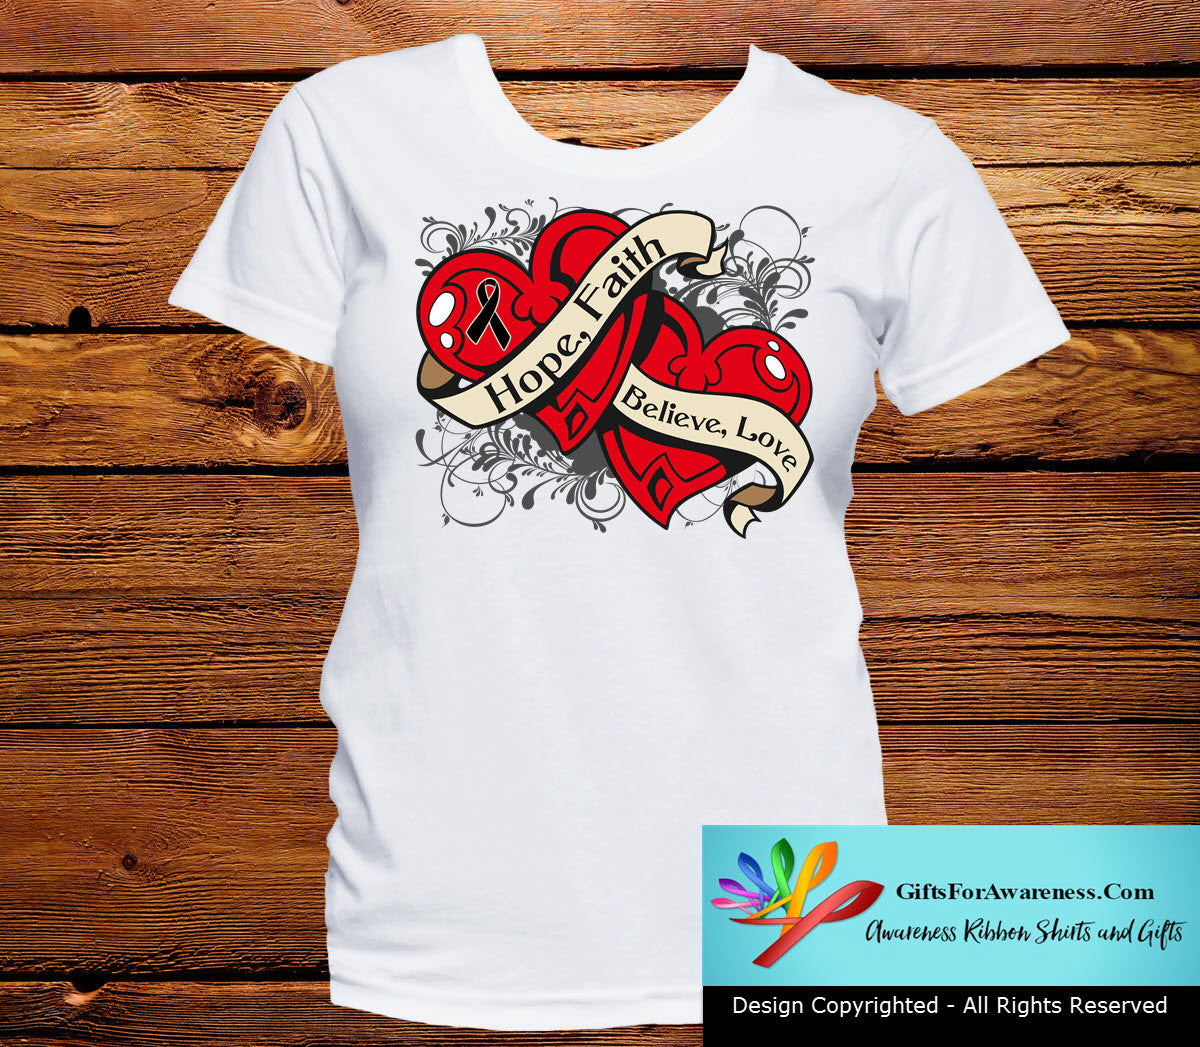 Skin Cancer Hope Believe Faith Love Shirts - GiftsForAwareness